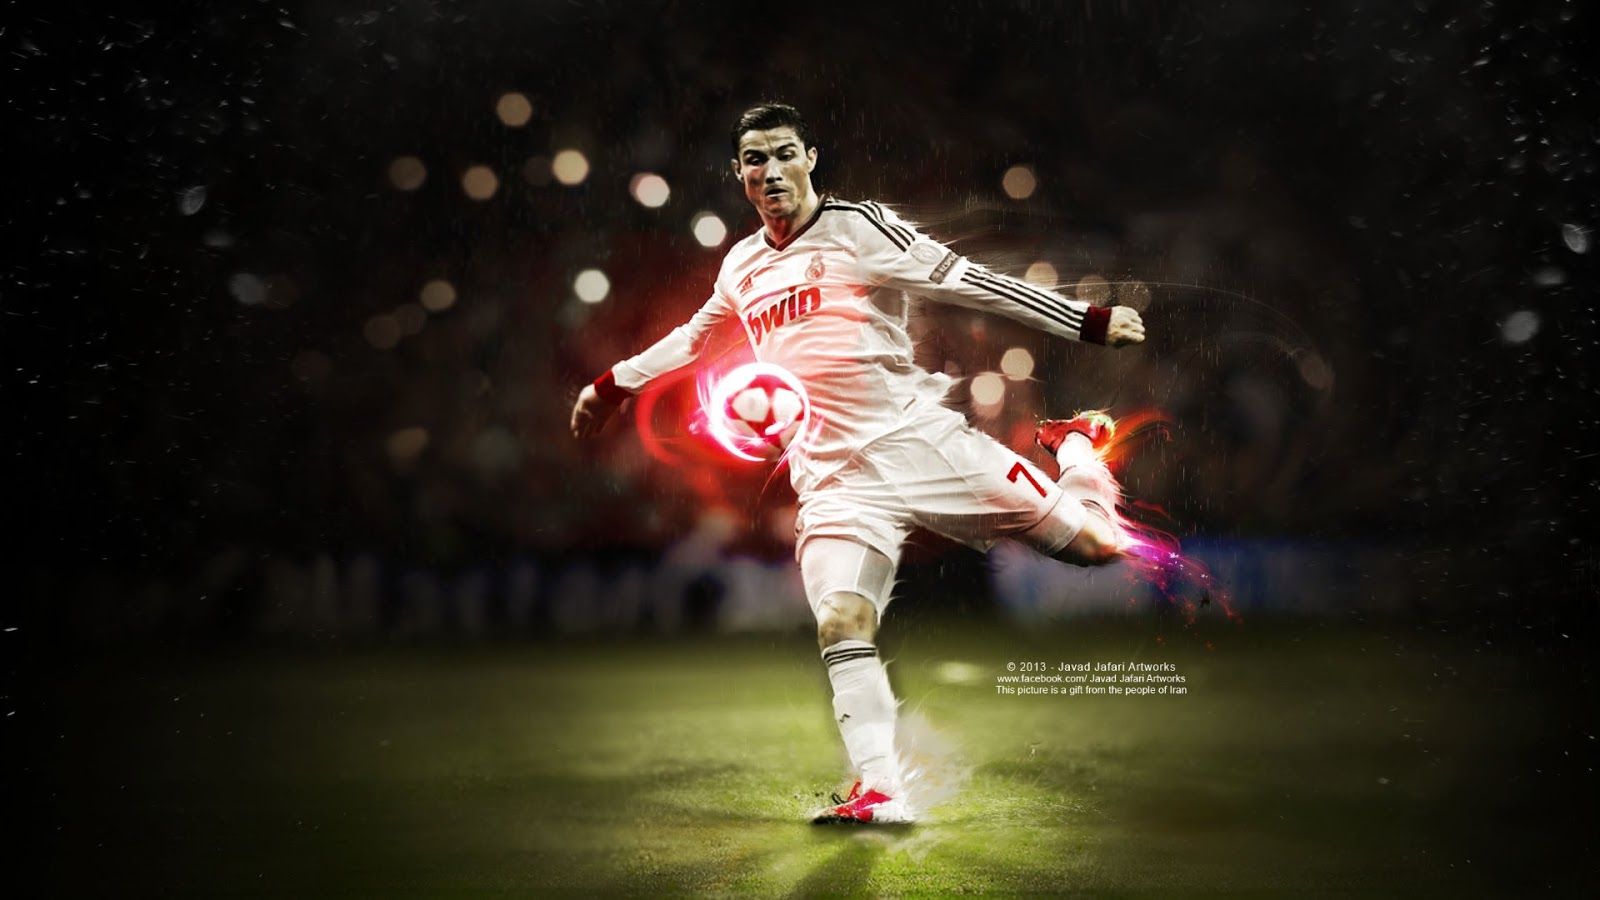 ciristiano-ronaldo-wallpaper-design-19